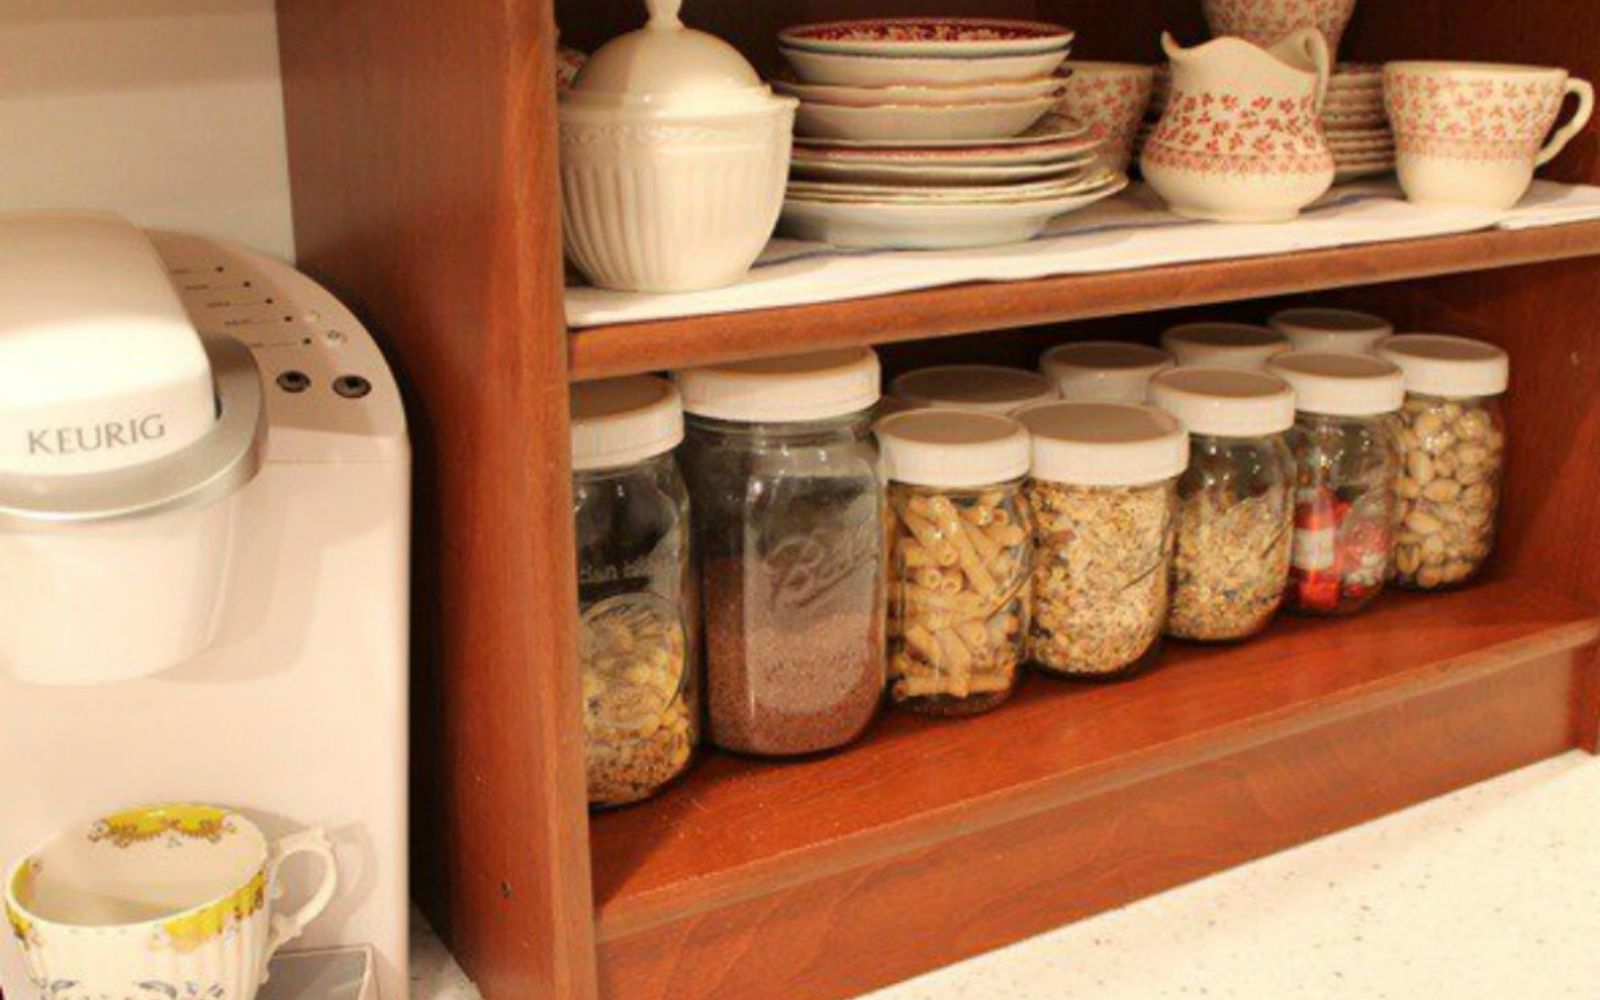 s get rid of kitchen countertop clutter with 13 clever mason jar ideas, countertops, kitchen design, mason jars, organizing, Organize your pantry and dry goods